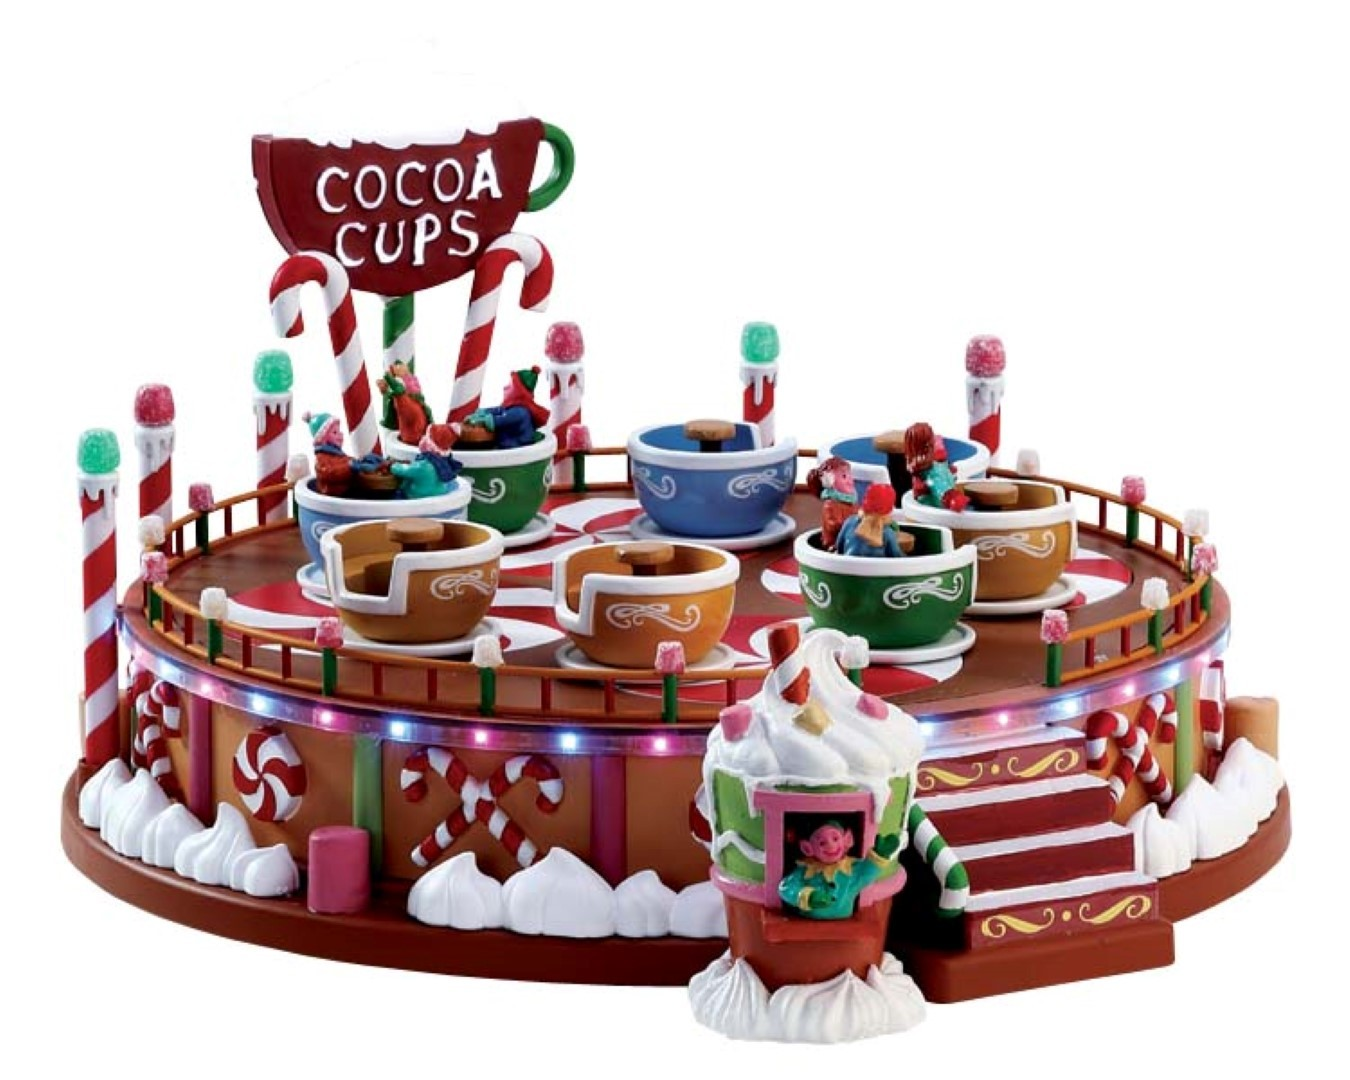 Cocoa cups set of 2 with 4.5v adaptor